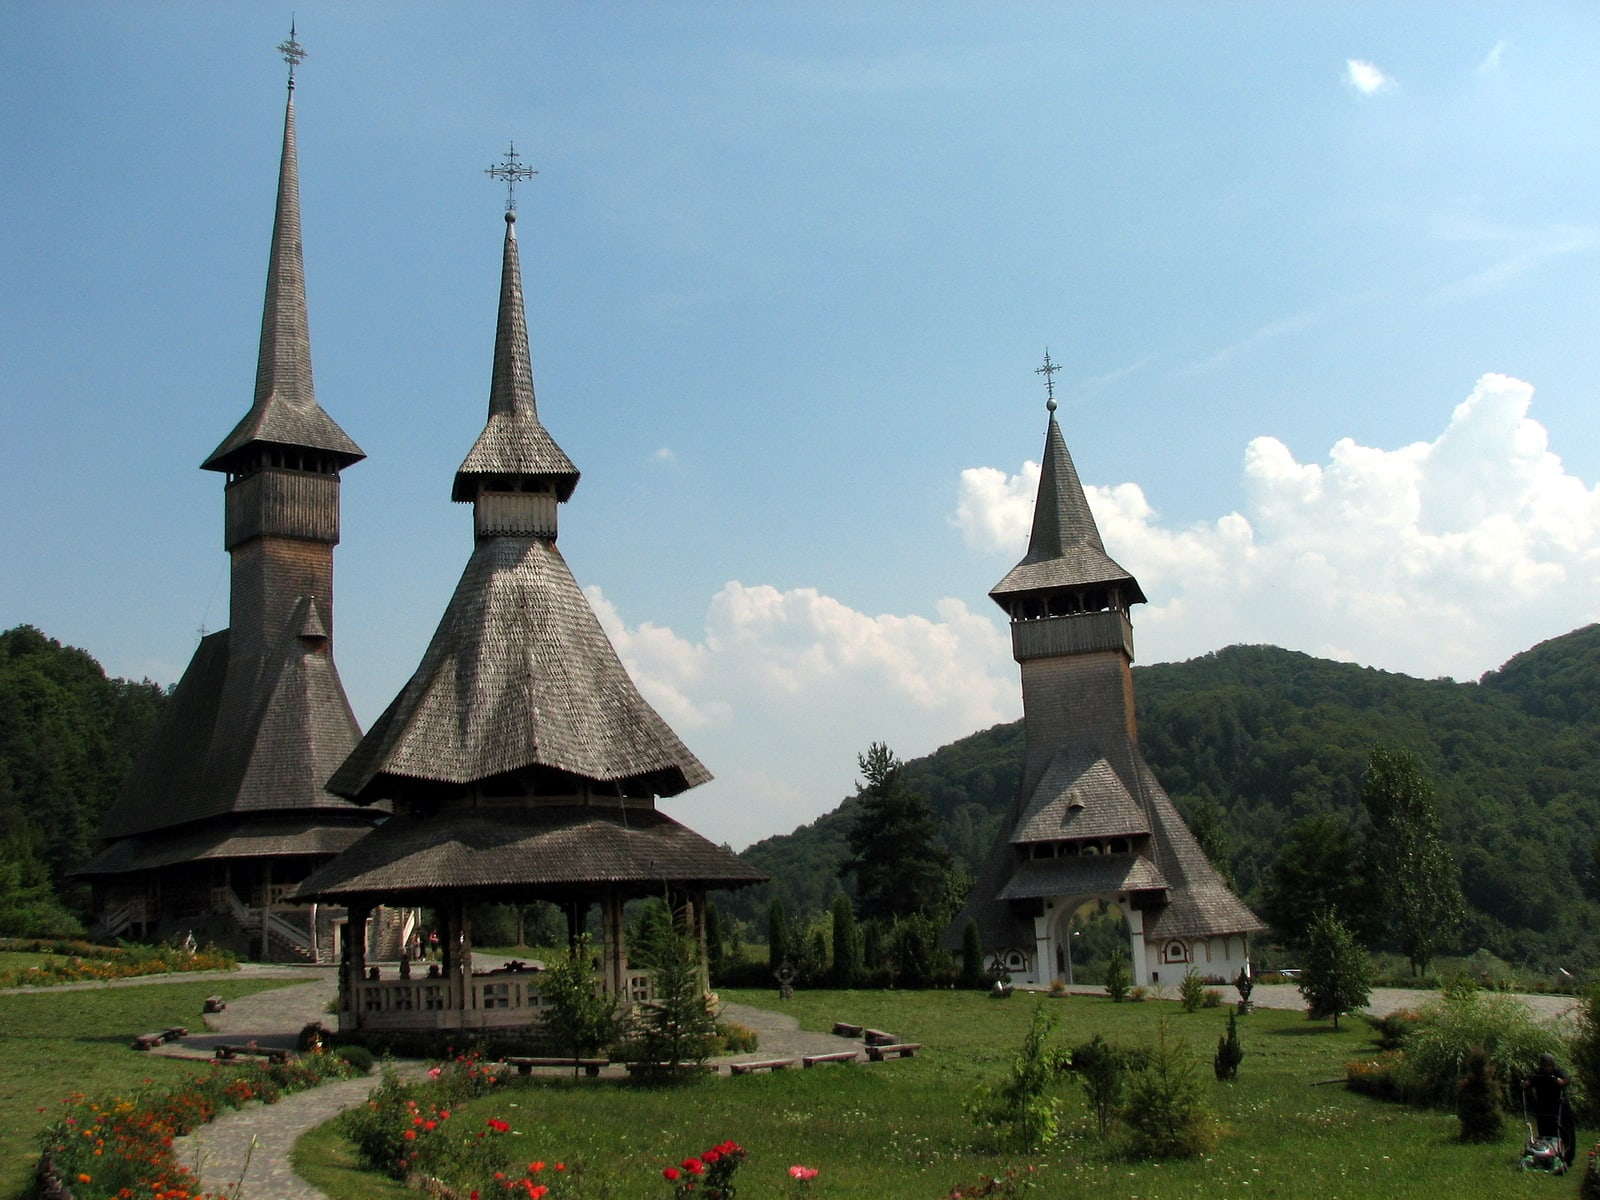 Barsana wooden church from Maramures Romania